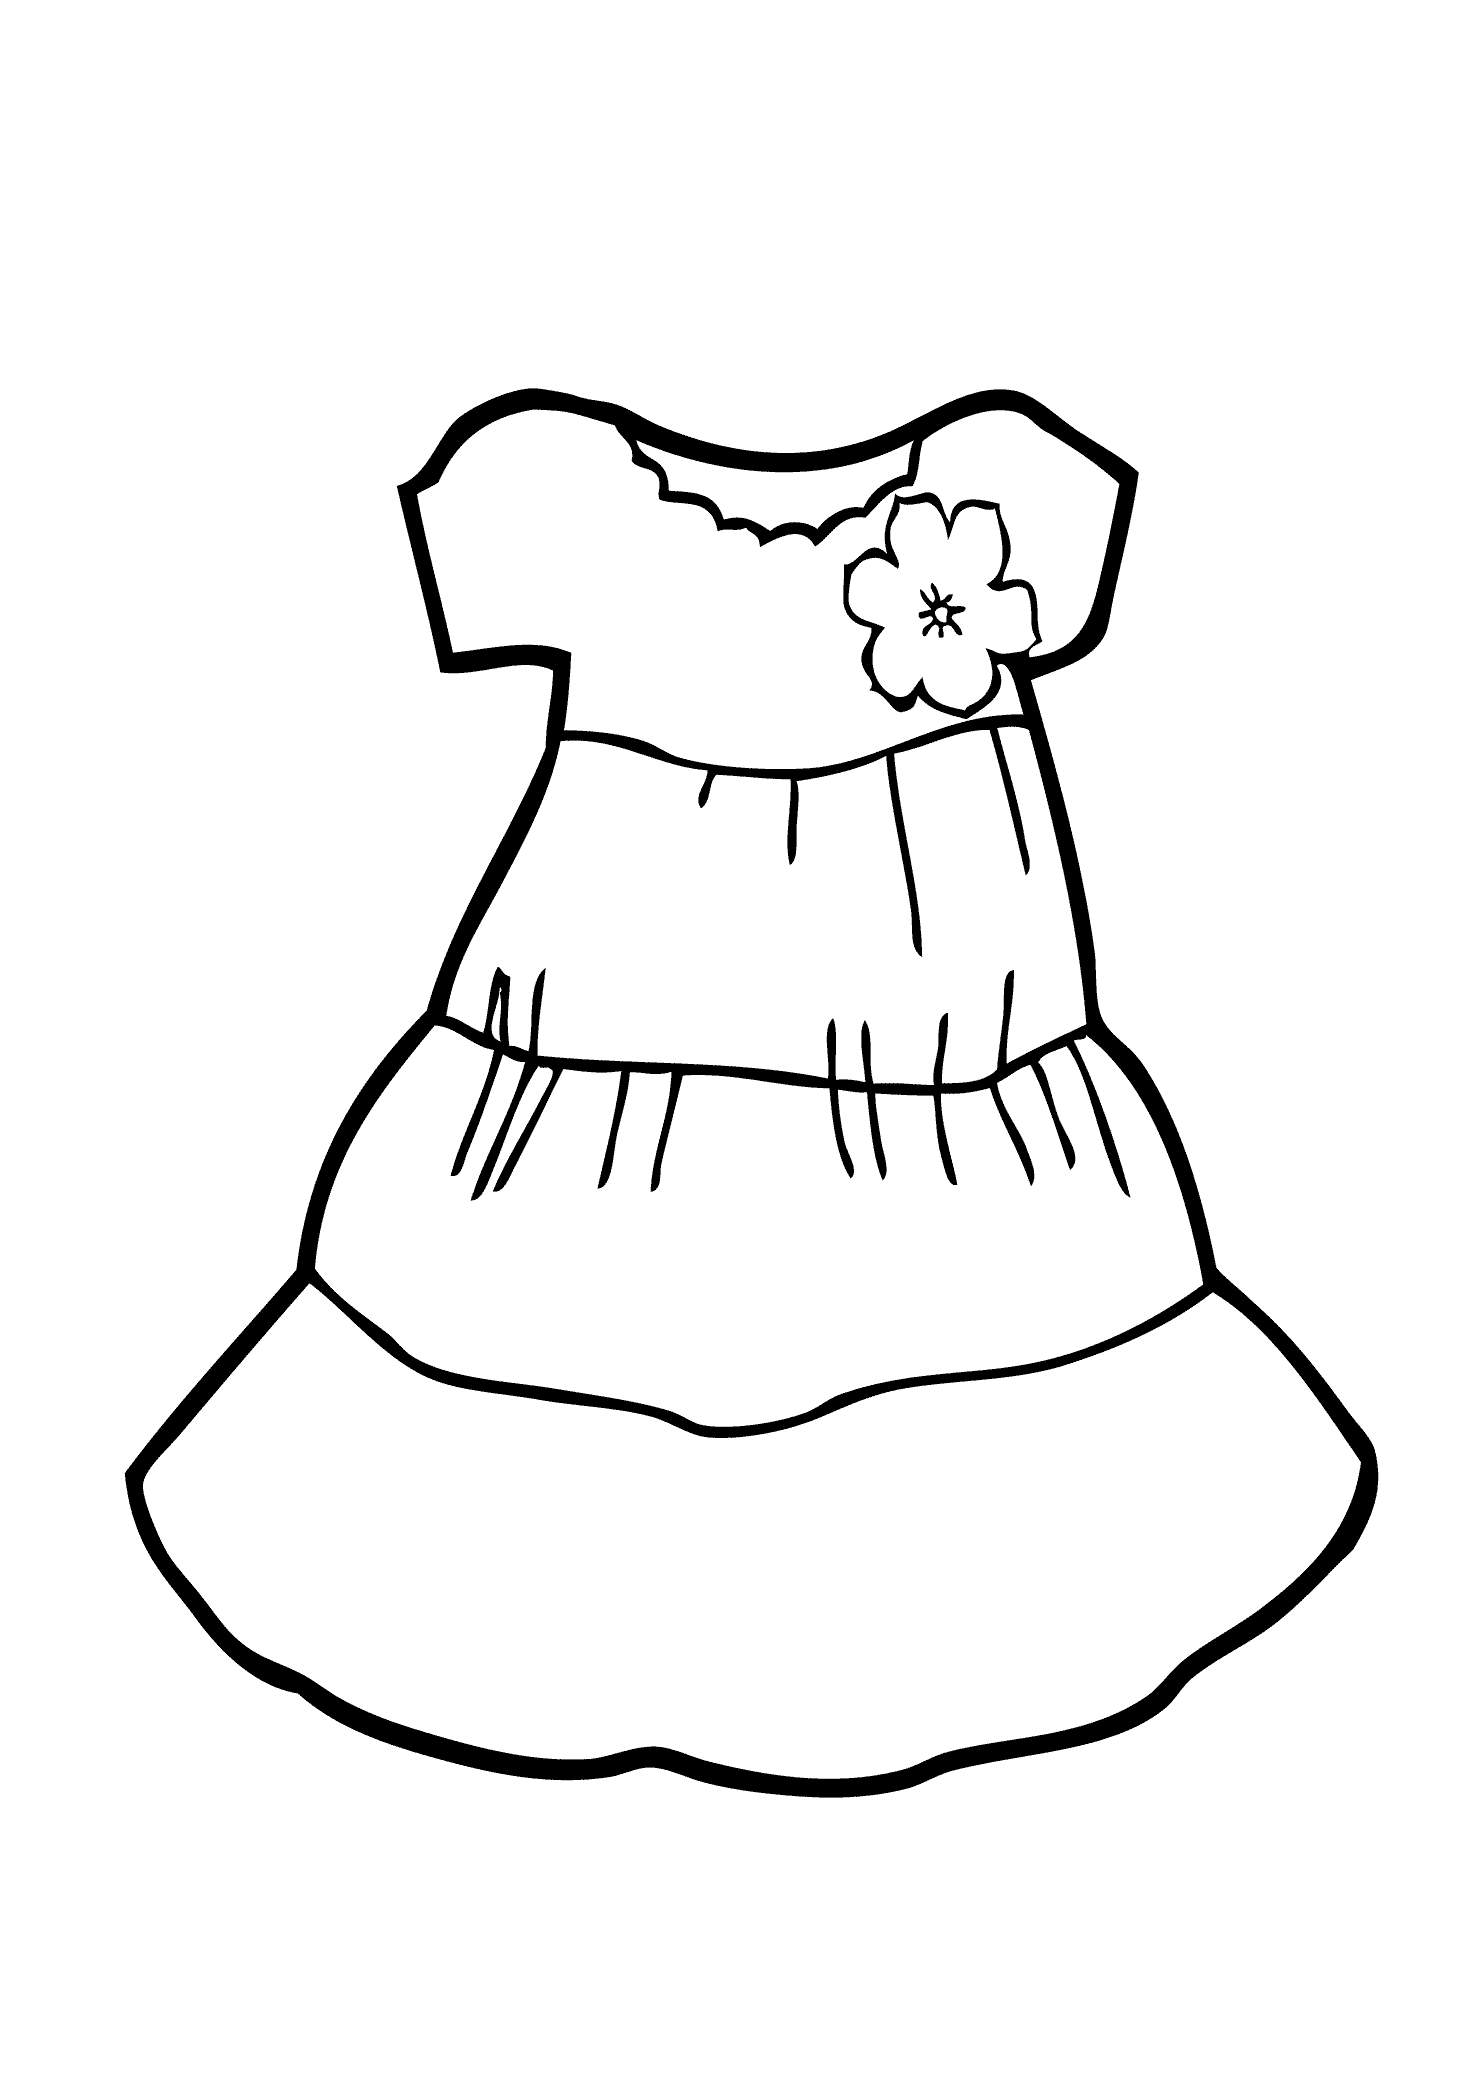 Getting Dressed Coloring Pages At Getcolorings